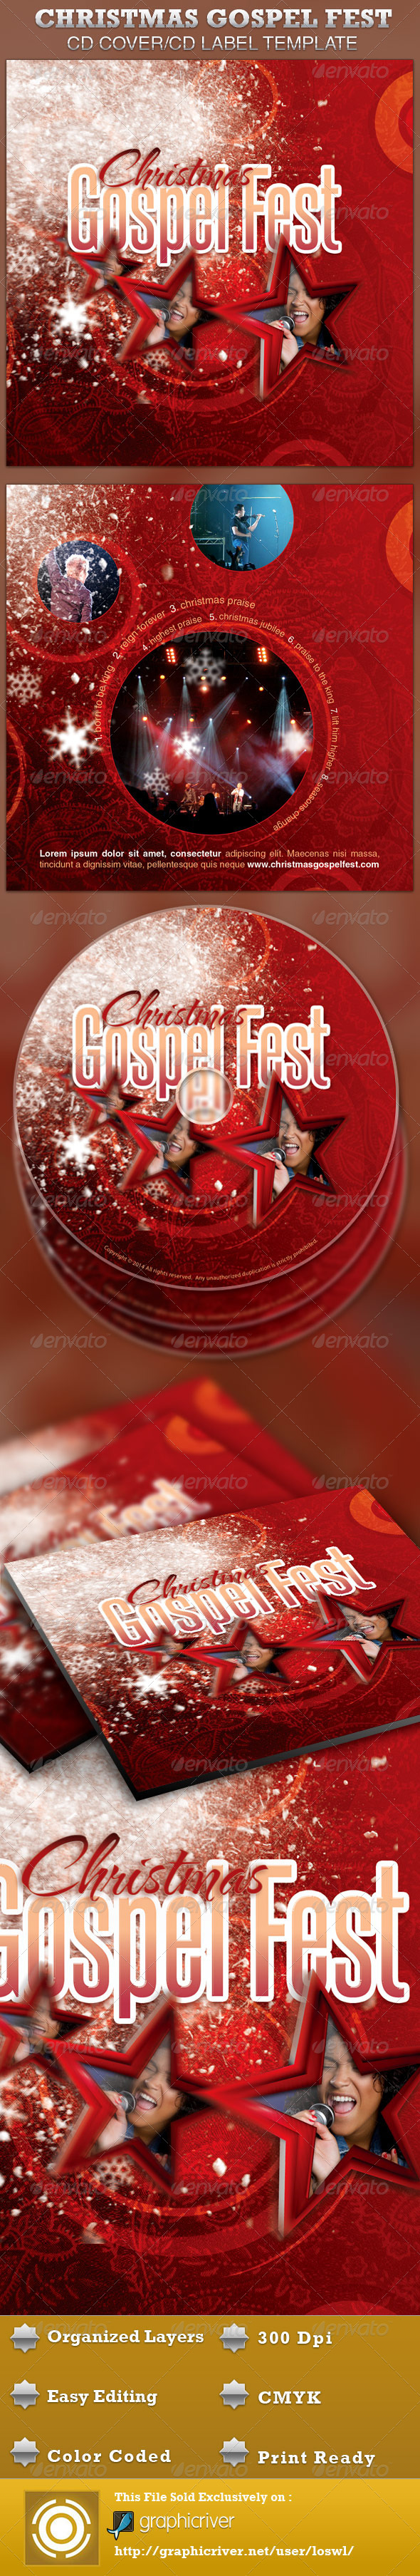 GraphicRiver Christmas Gospel Fest CD Artwork Template 4274240